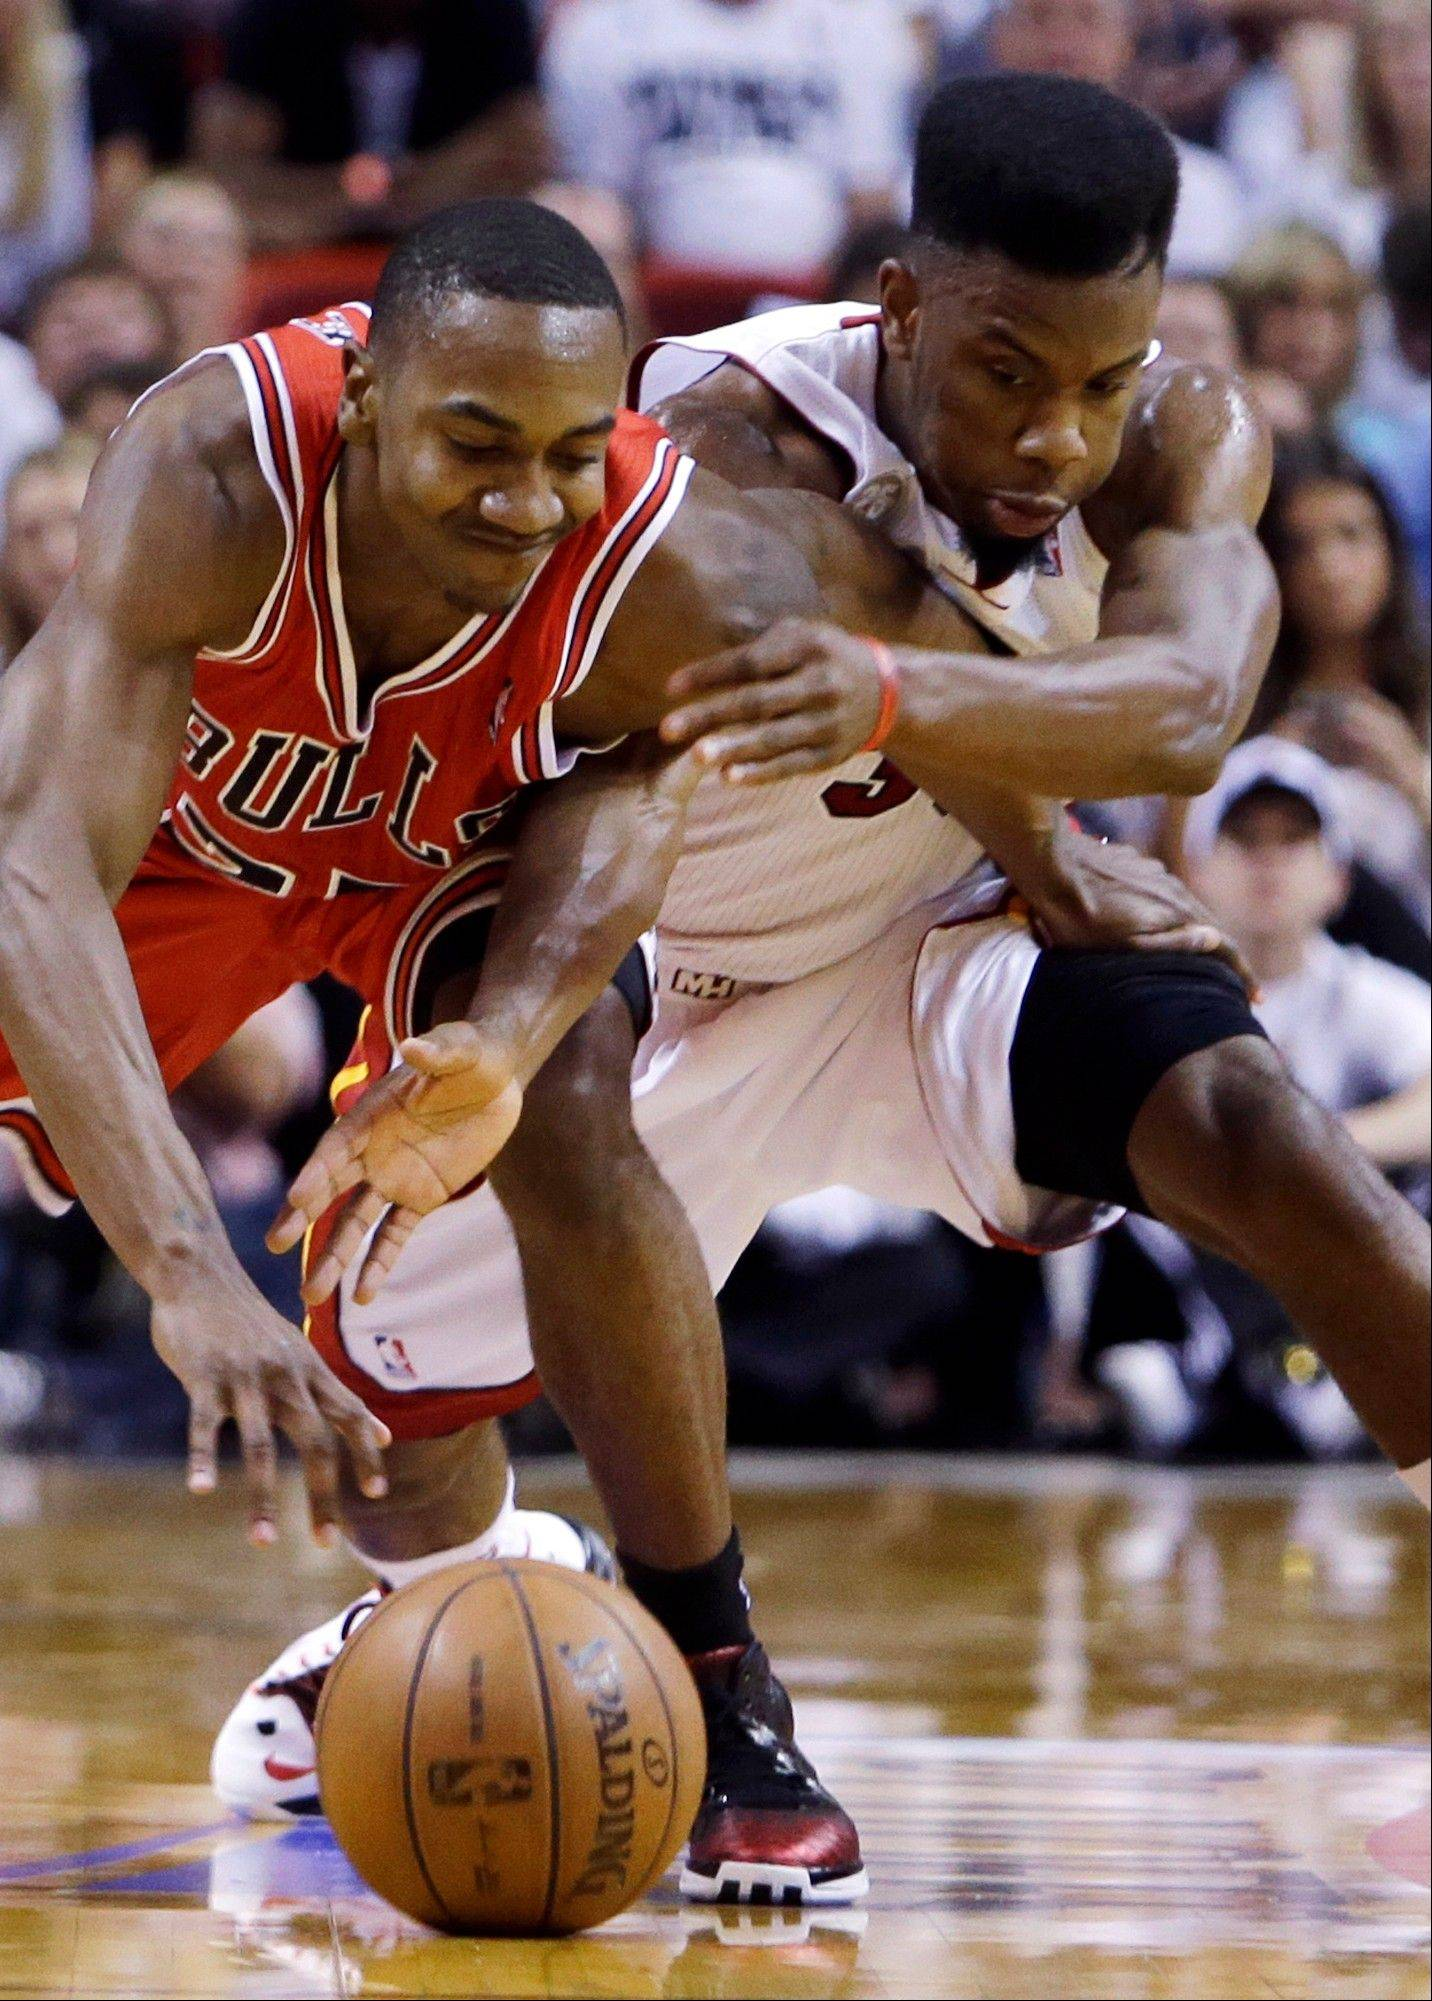 Chicago Bulls guard Marquis Teague, left, and Miami Heat guard Norris Cole battle for a loose ball during the first half of Game 1 of the NBA basketball playoff series in the Eastern Conference semifinals, Monday, May 6, 2013 in Miami.